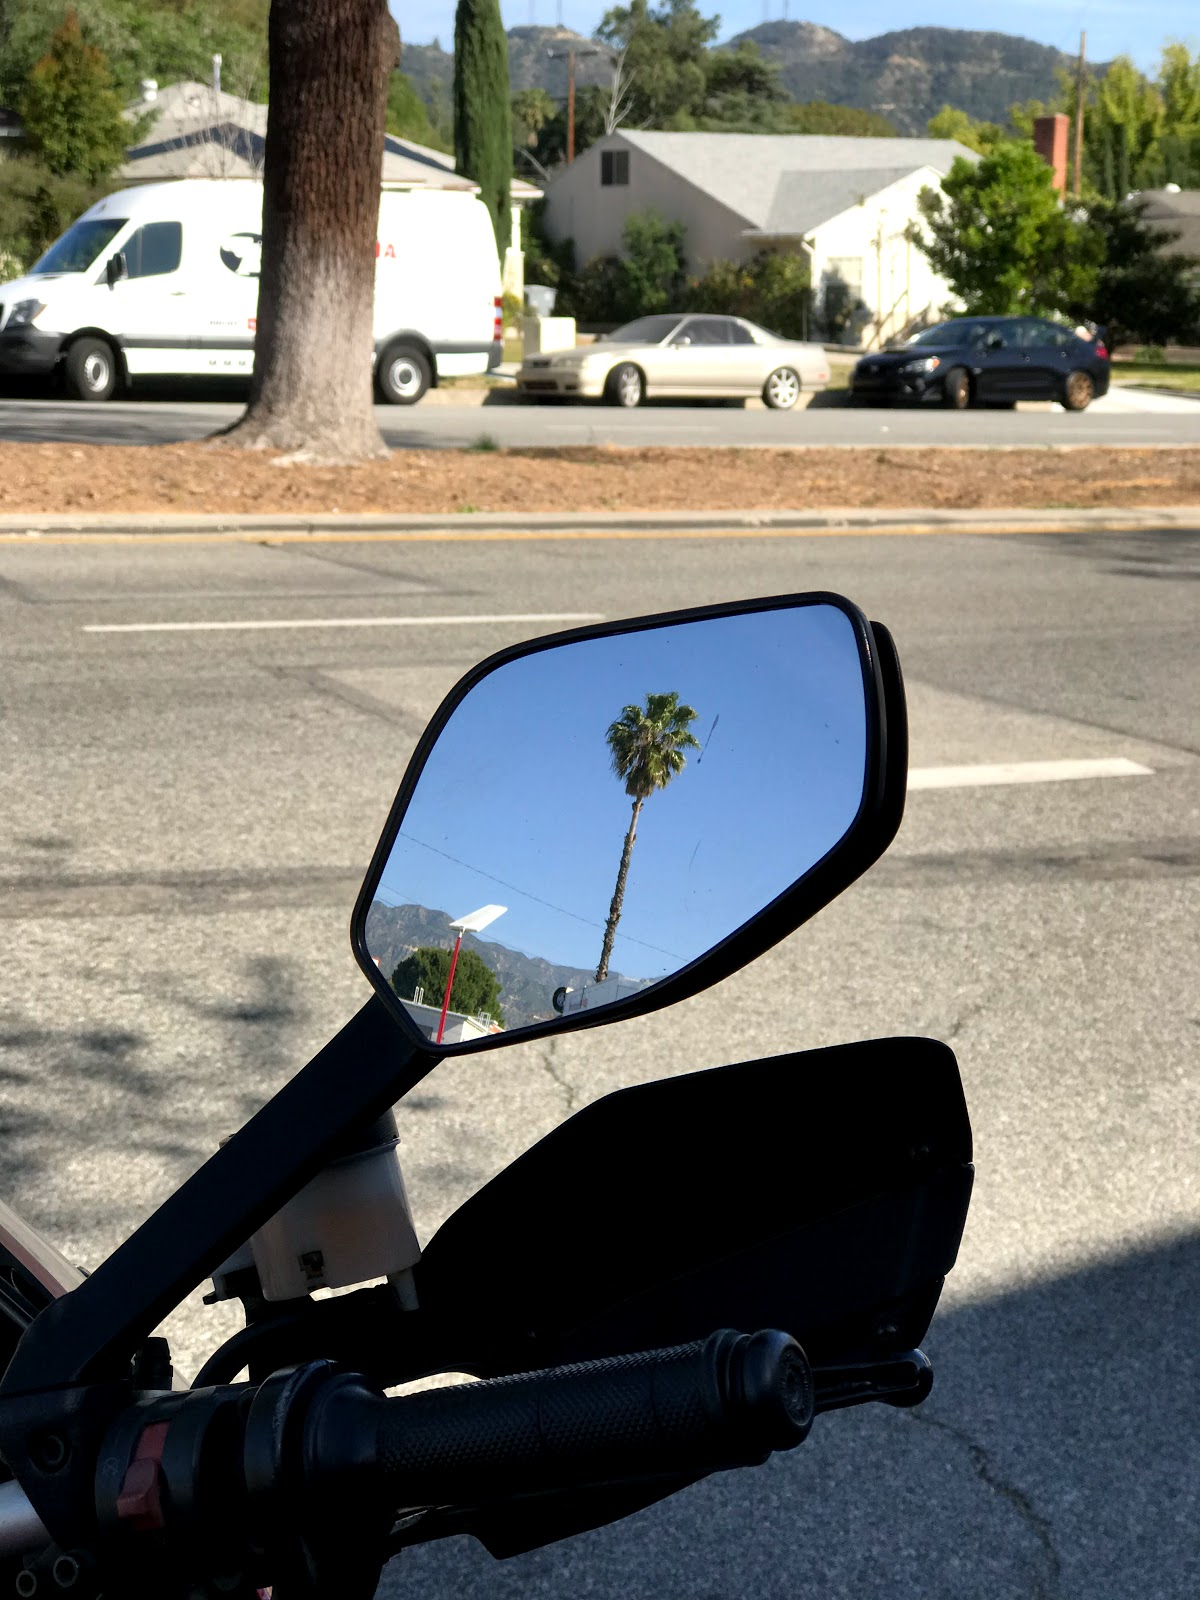 Tigh takes a picture of California palm trees outside ProItalia in Glendale